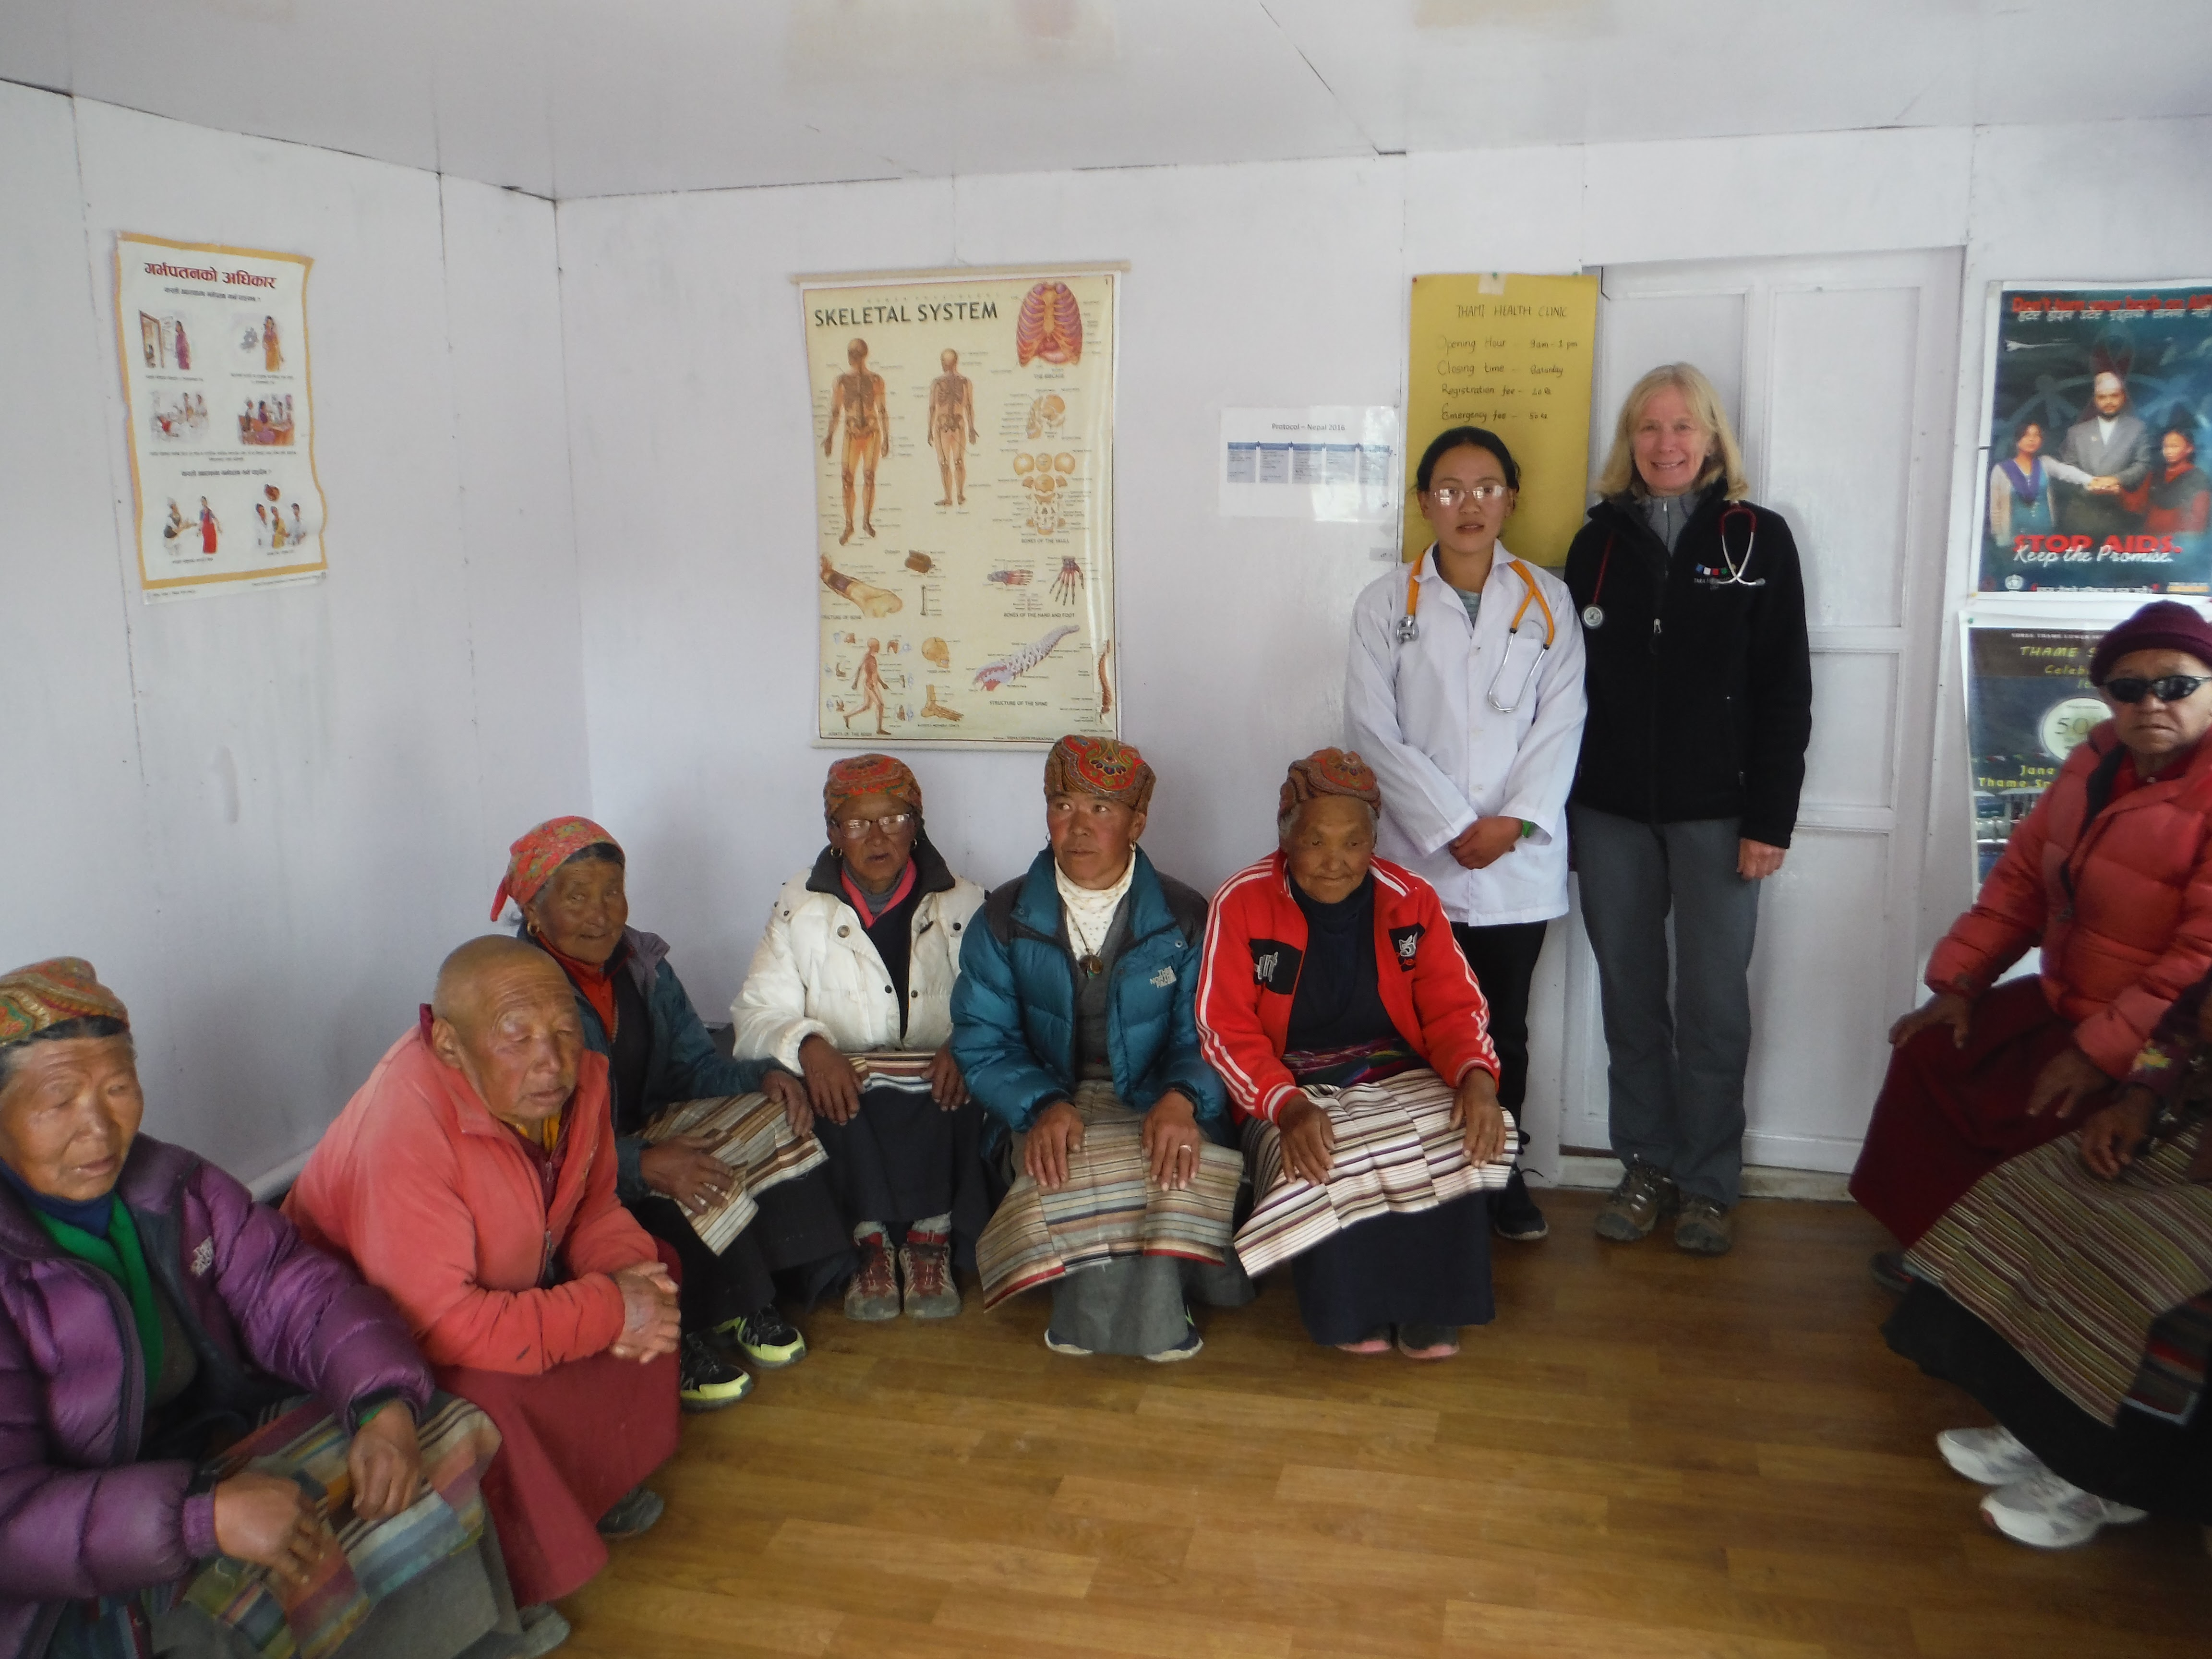 Denise Coriell of the Tara Foundation USA and a health worker from the Thame Clinic in Nepal helping people at the clinic.